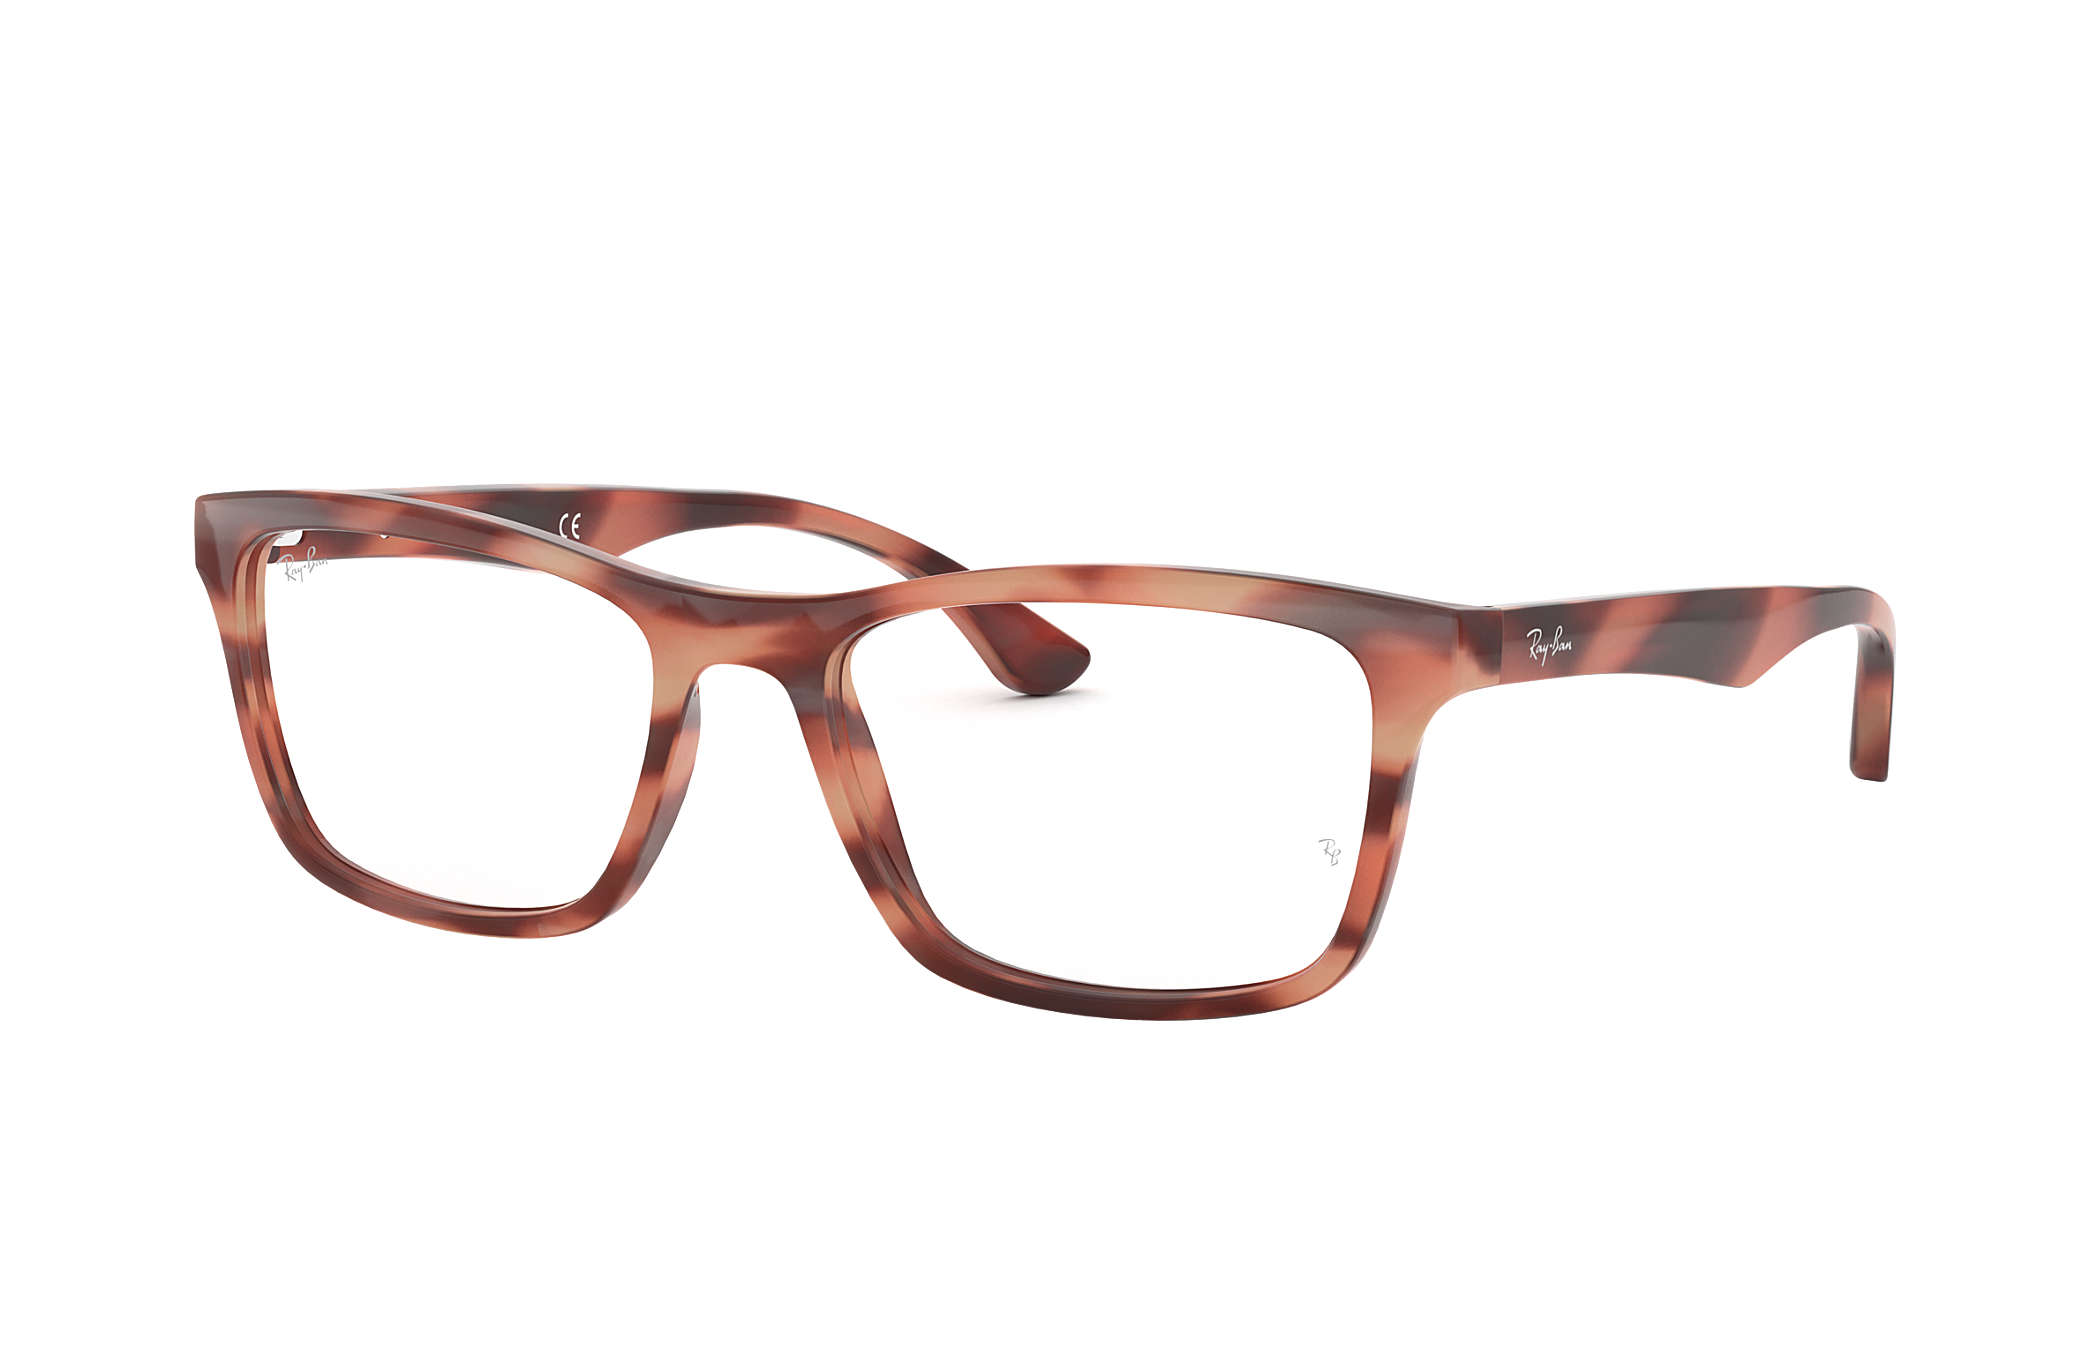 4257be94ef Ray-Ban prescription glasses RB5279 Pink - Acetate - 0RX5279577455 ...